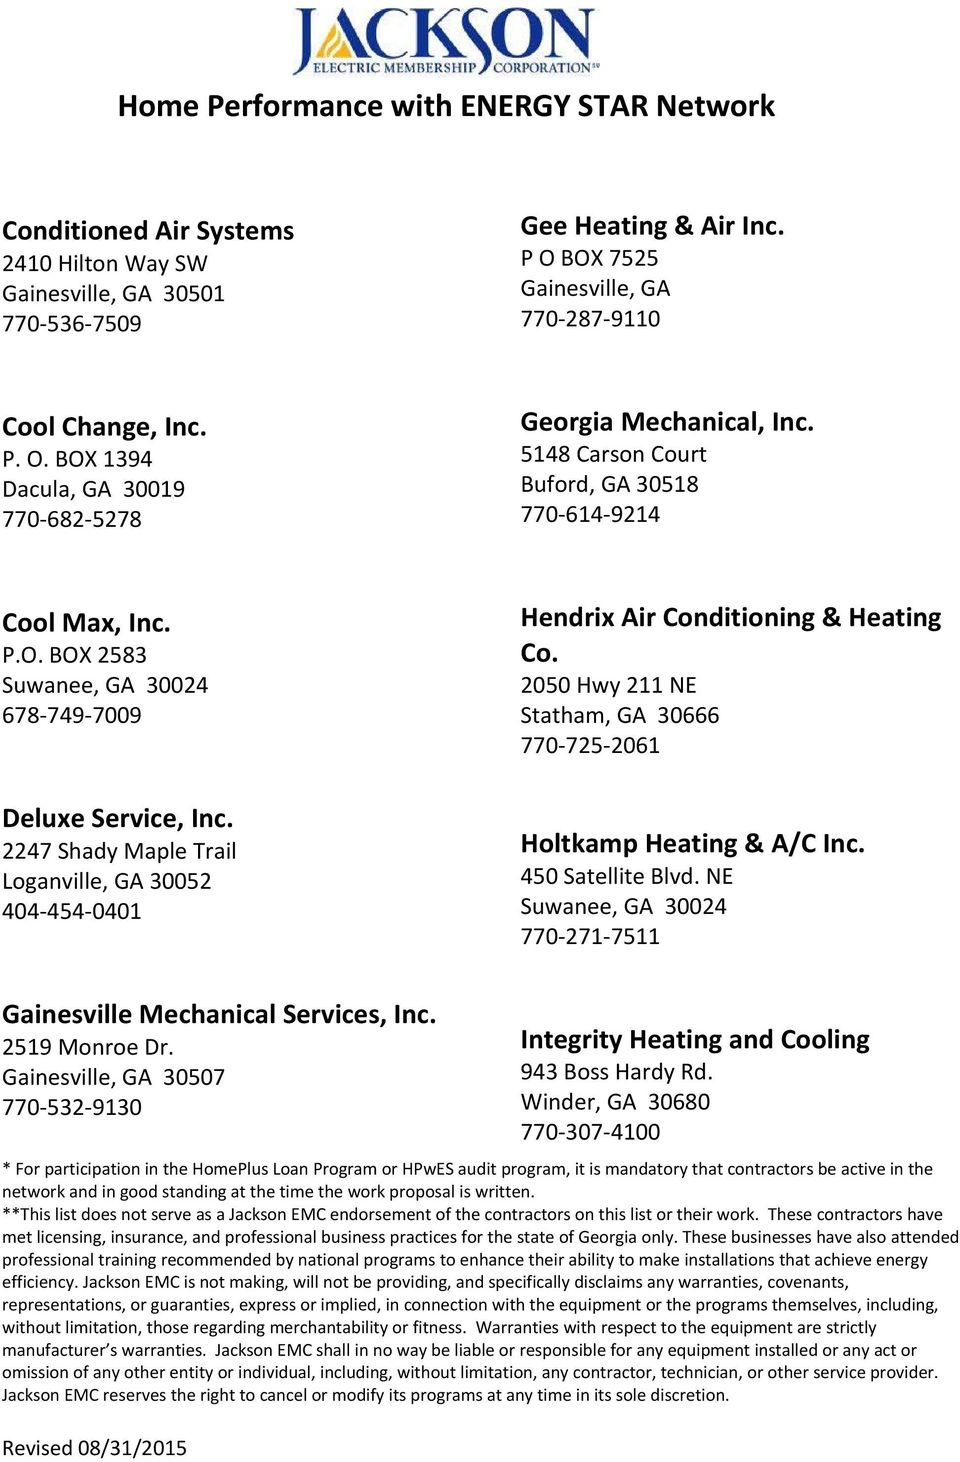 2247 Shady Maple Trail Loganville, GA 30052 404 454 0401 Hendrix Air Conditioning & Heating Co. 2050 Hwy 211 NE Statham, GA 30666 770 725 2061 Holtkamp Heating & A/C Inc.